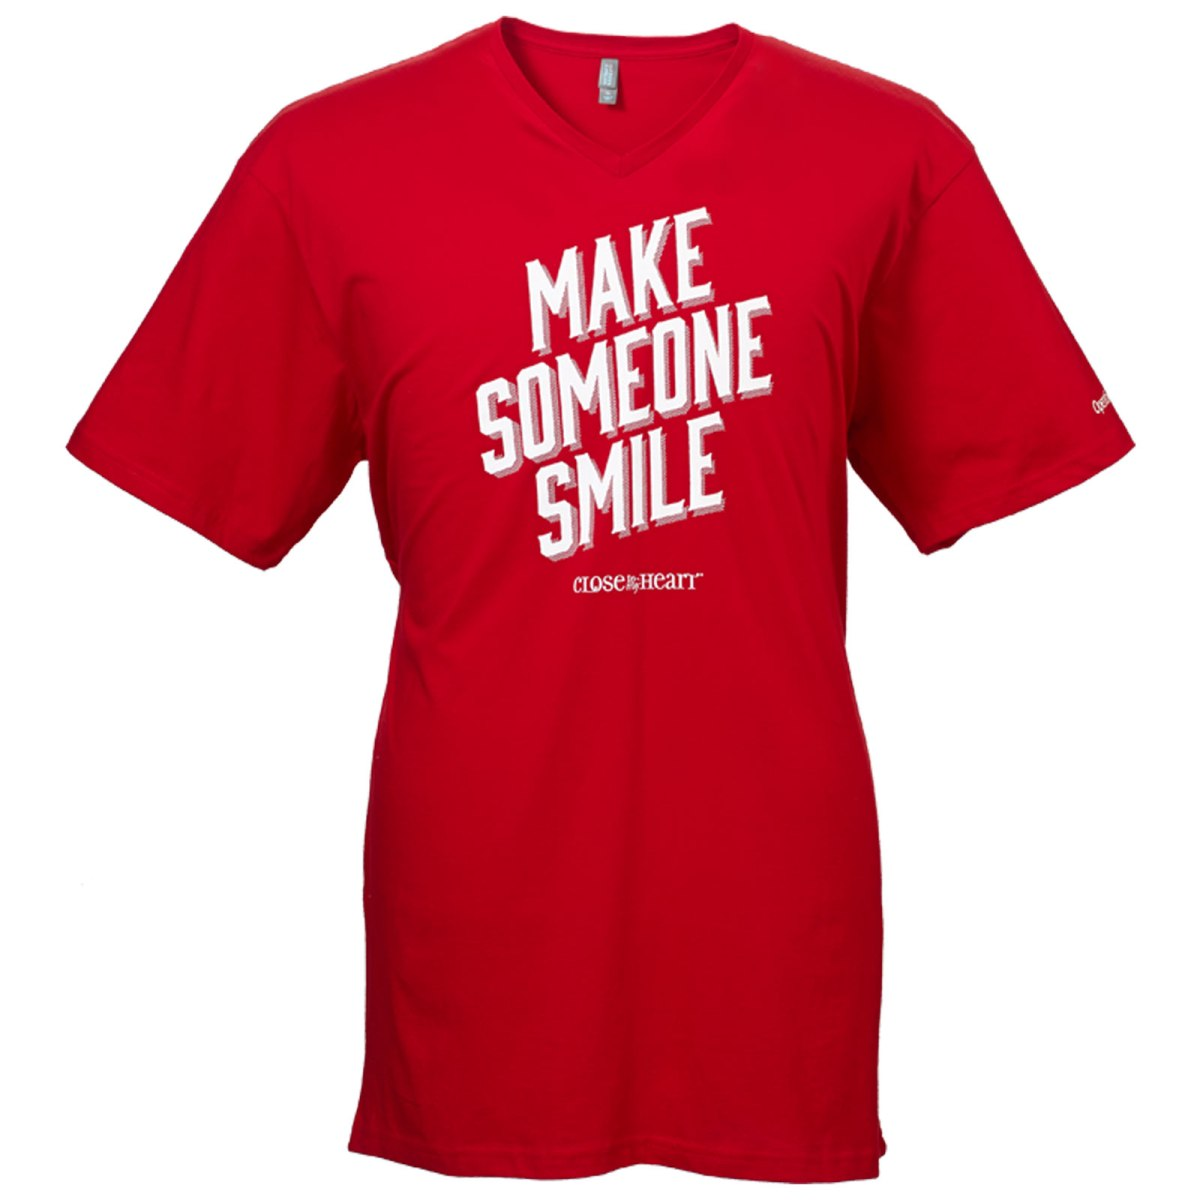 Support Operation Smile by buying one of these shirts! #ctmh #CloseToMyHeart #OperationSmile #operationsmile #makesomeonesmile #donate